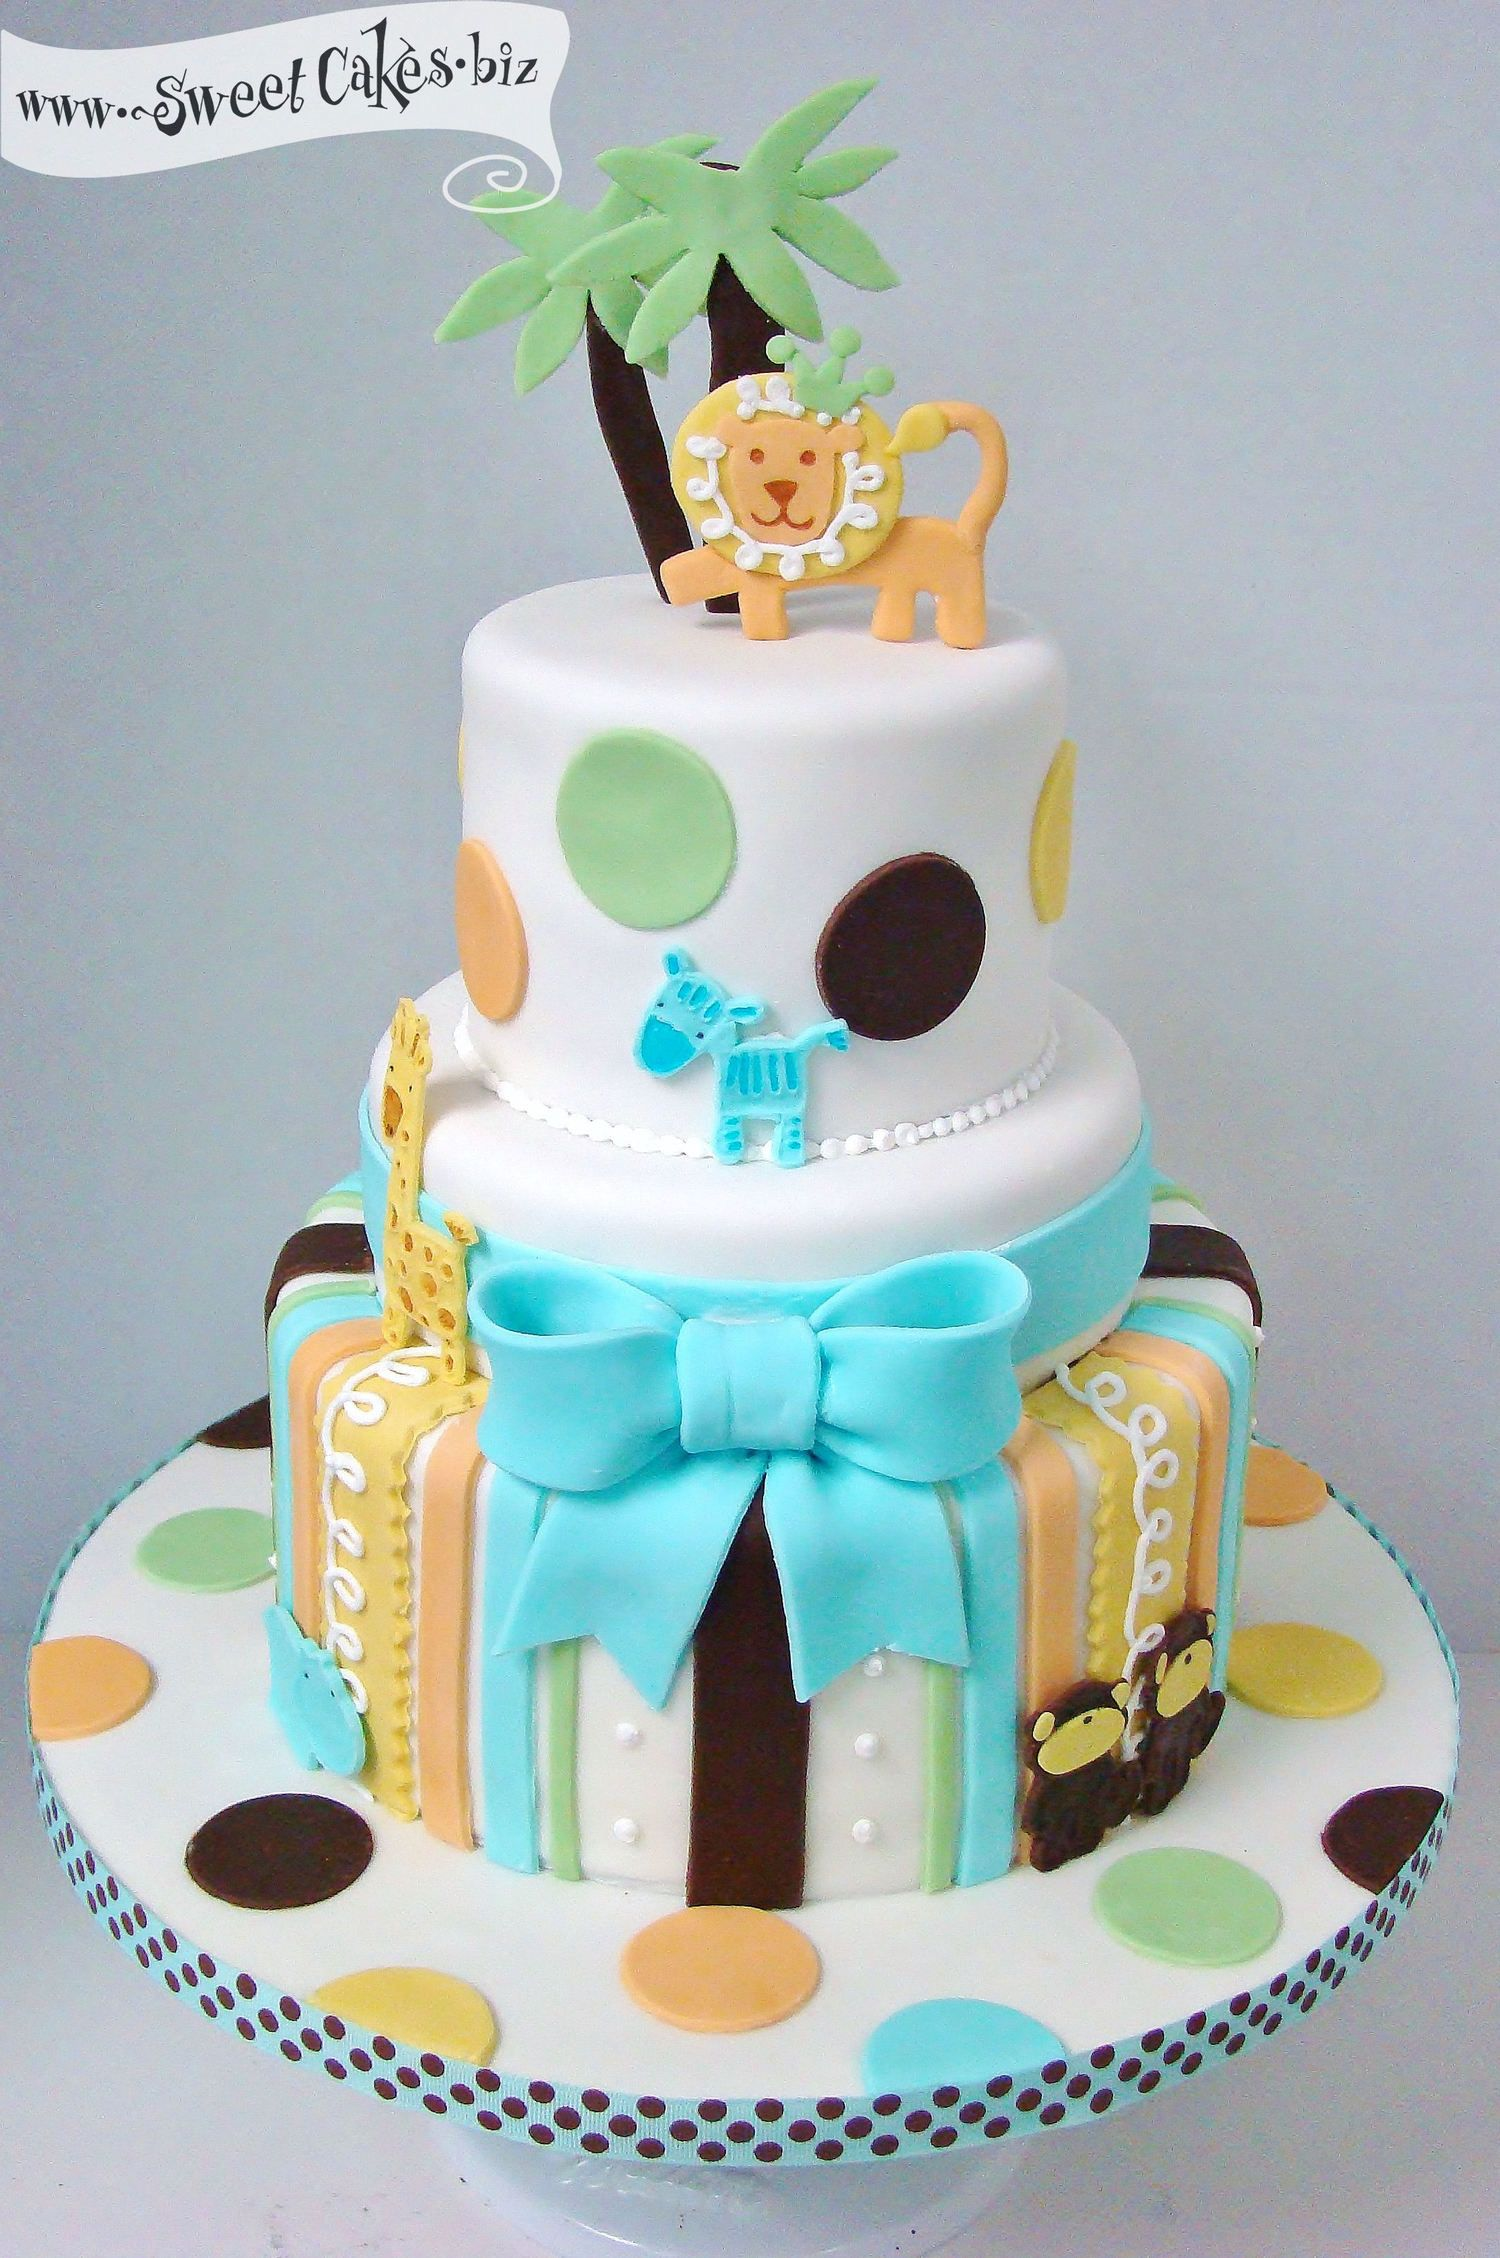 King Of The Jungle Baby Shower Cake Plus Stakes Of AMAZING Cake Ideas